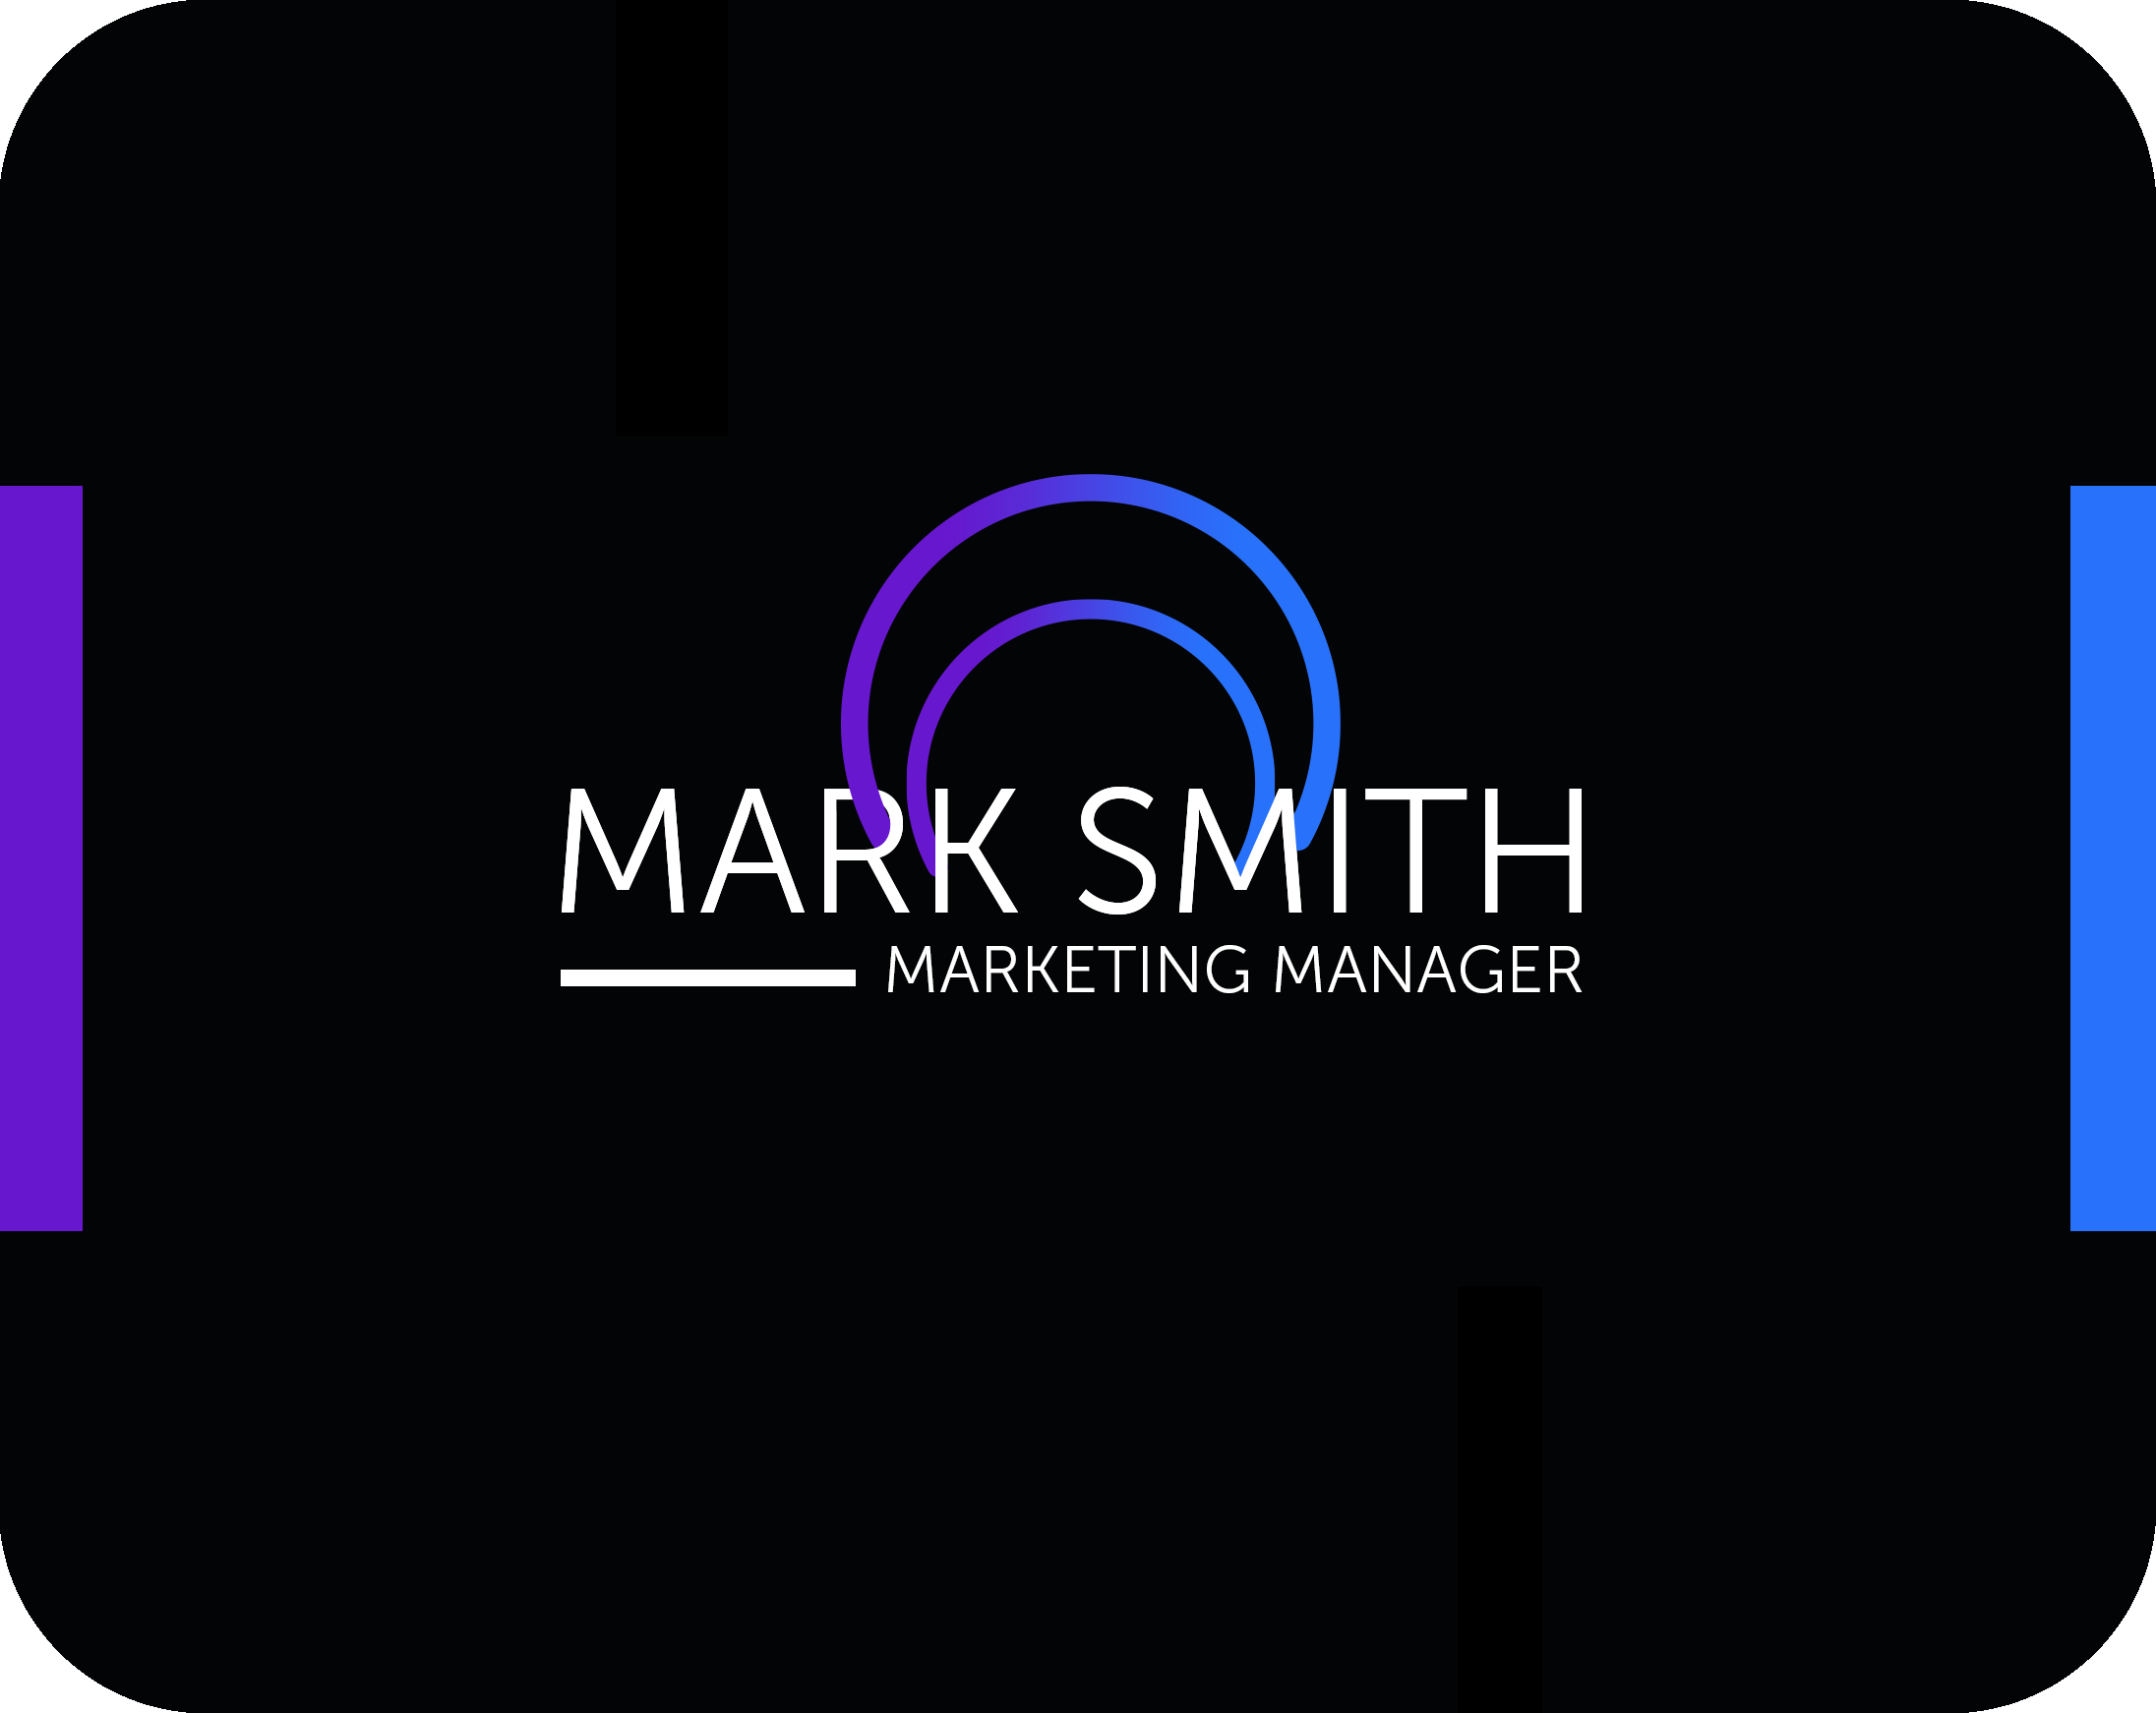 marketing manager's black business card template with neon lights